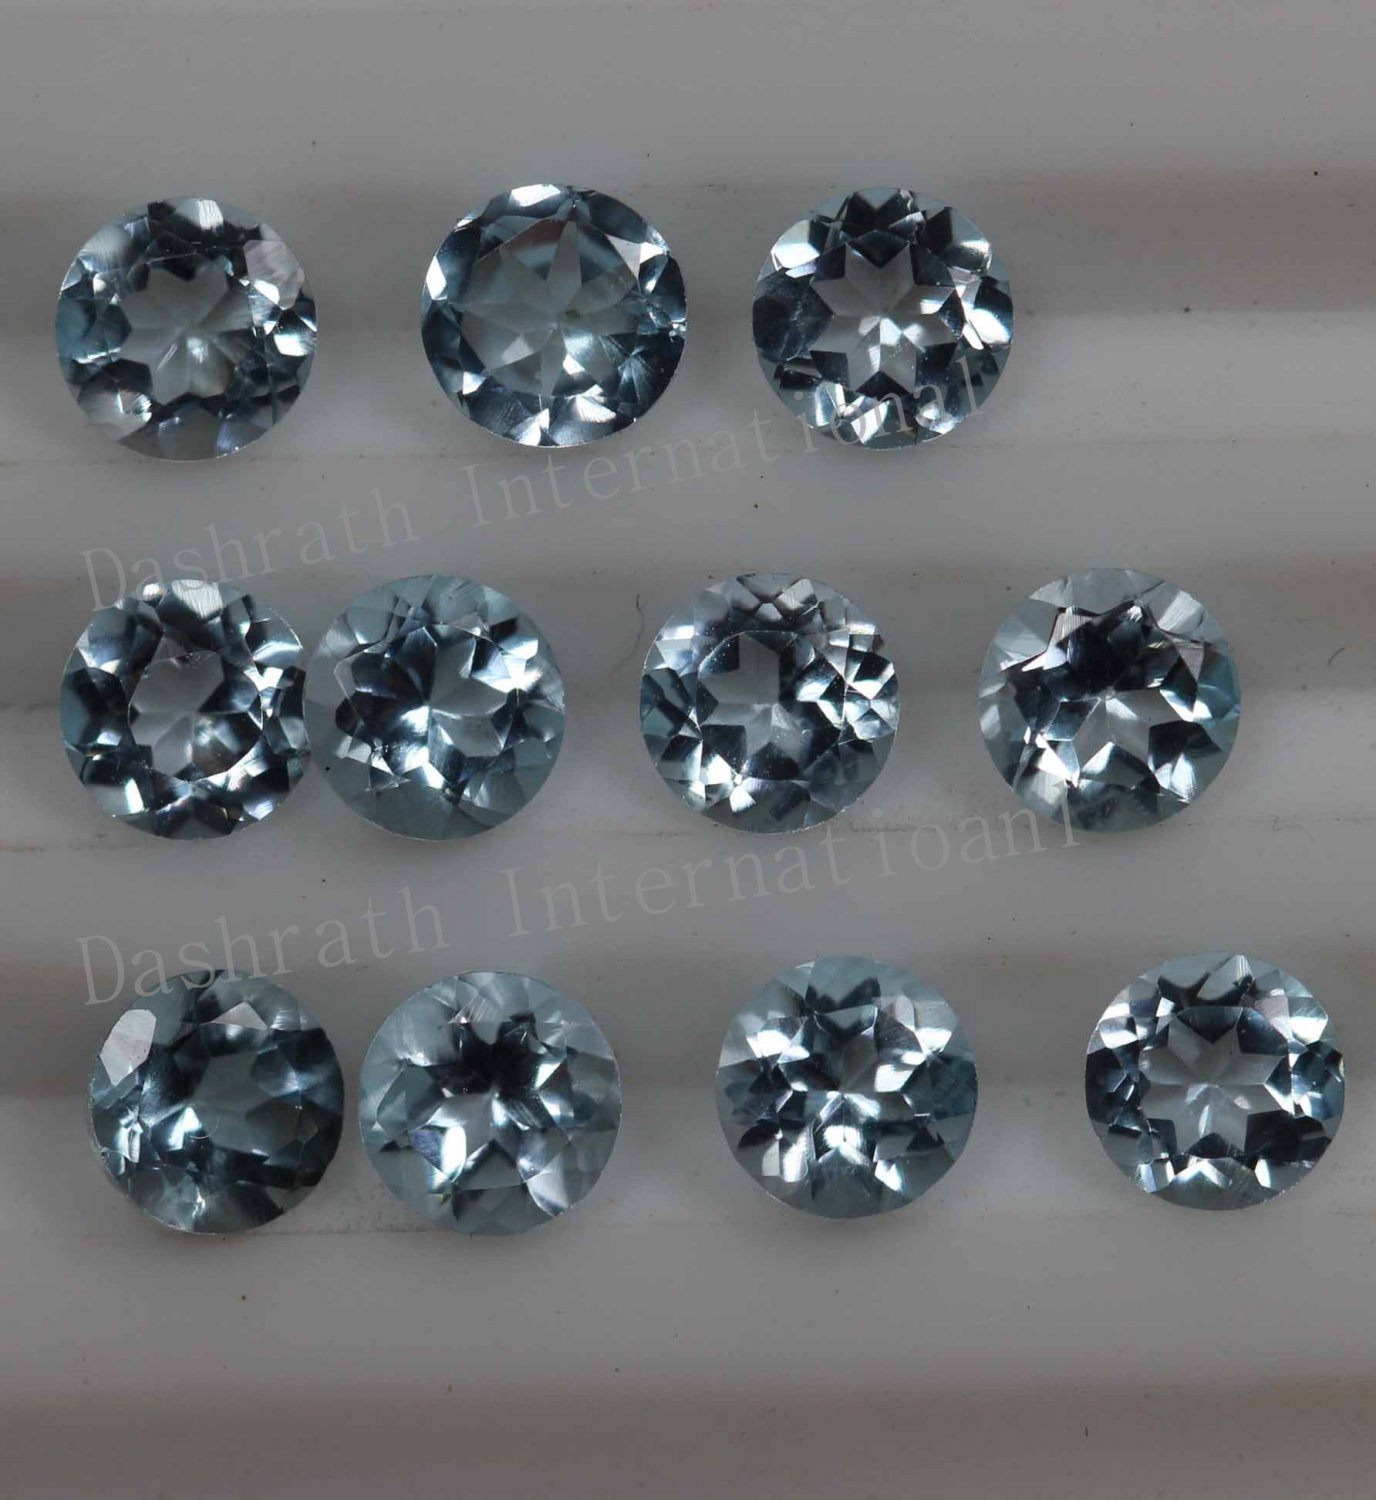 6mmNatural Sky Blue Topaz Faceted Cut Round 5 Pieces Lot Blue Color  Top Quality Loose Gemstone